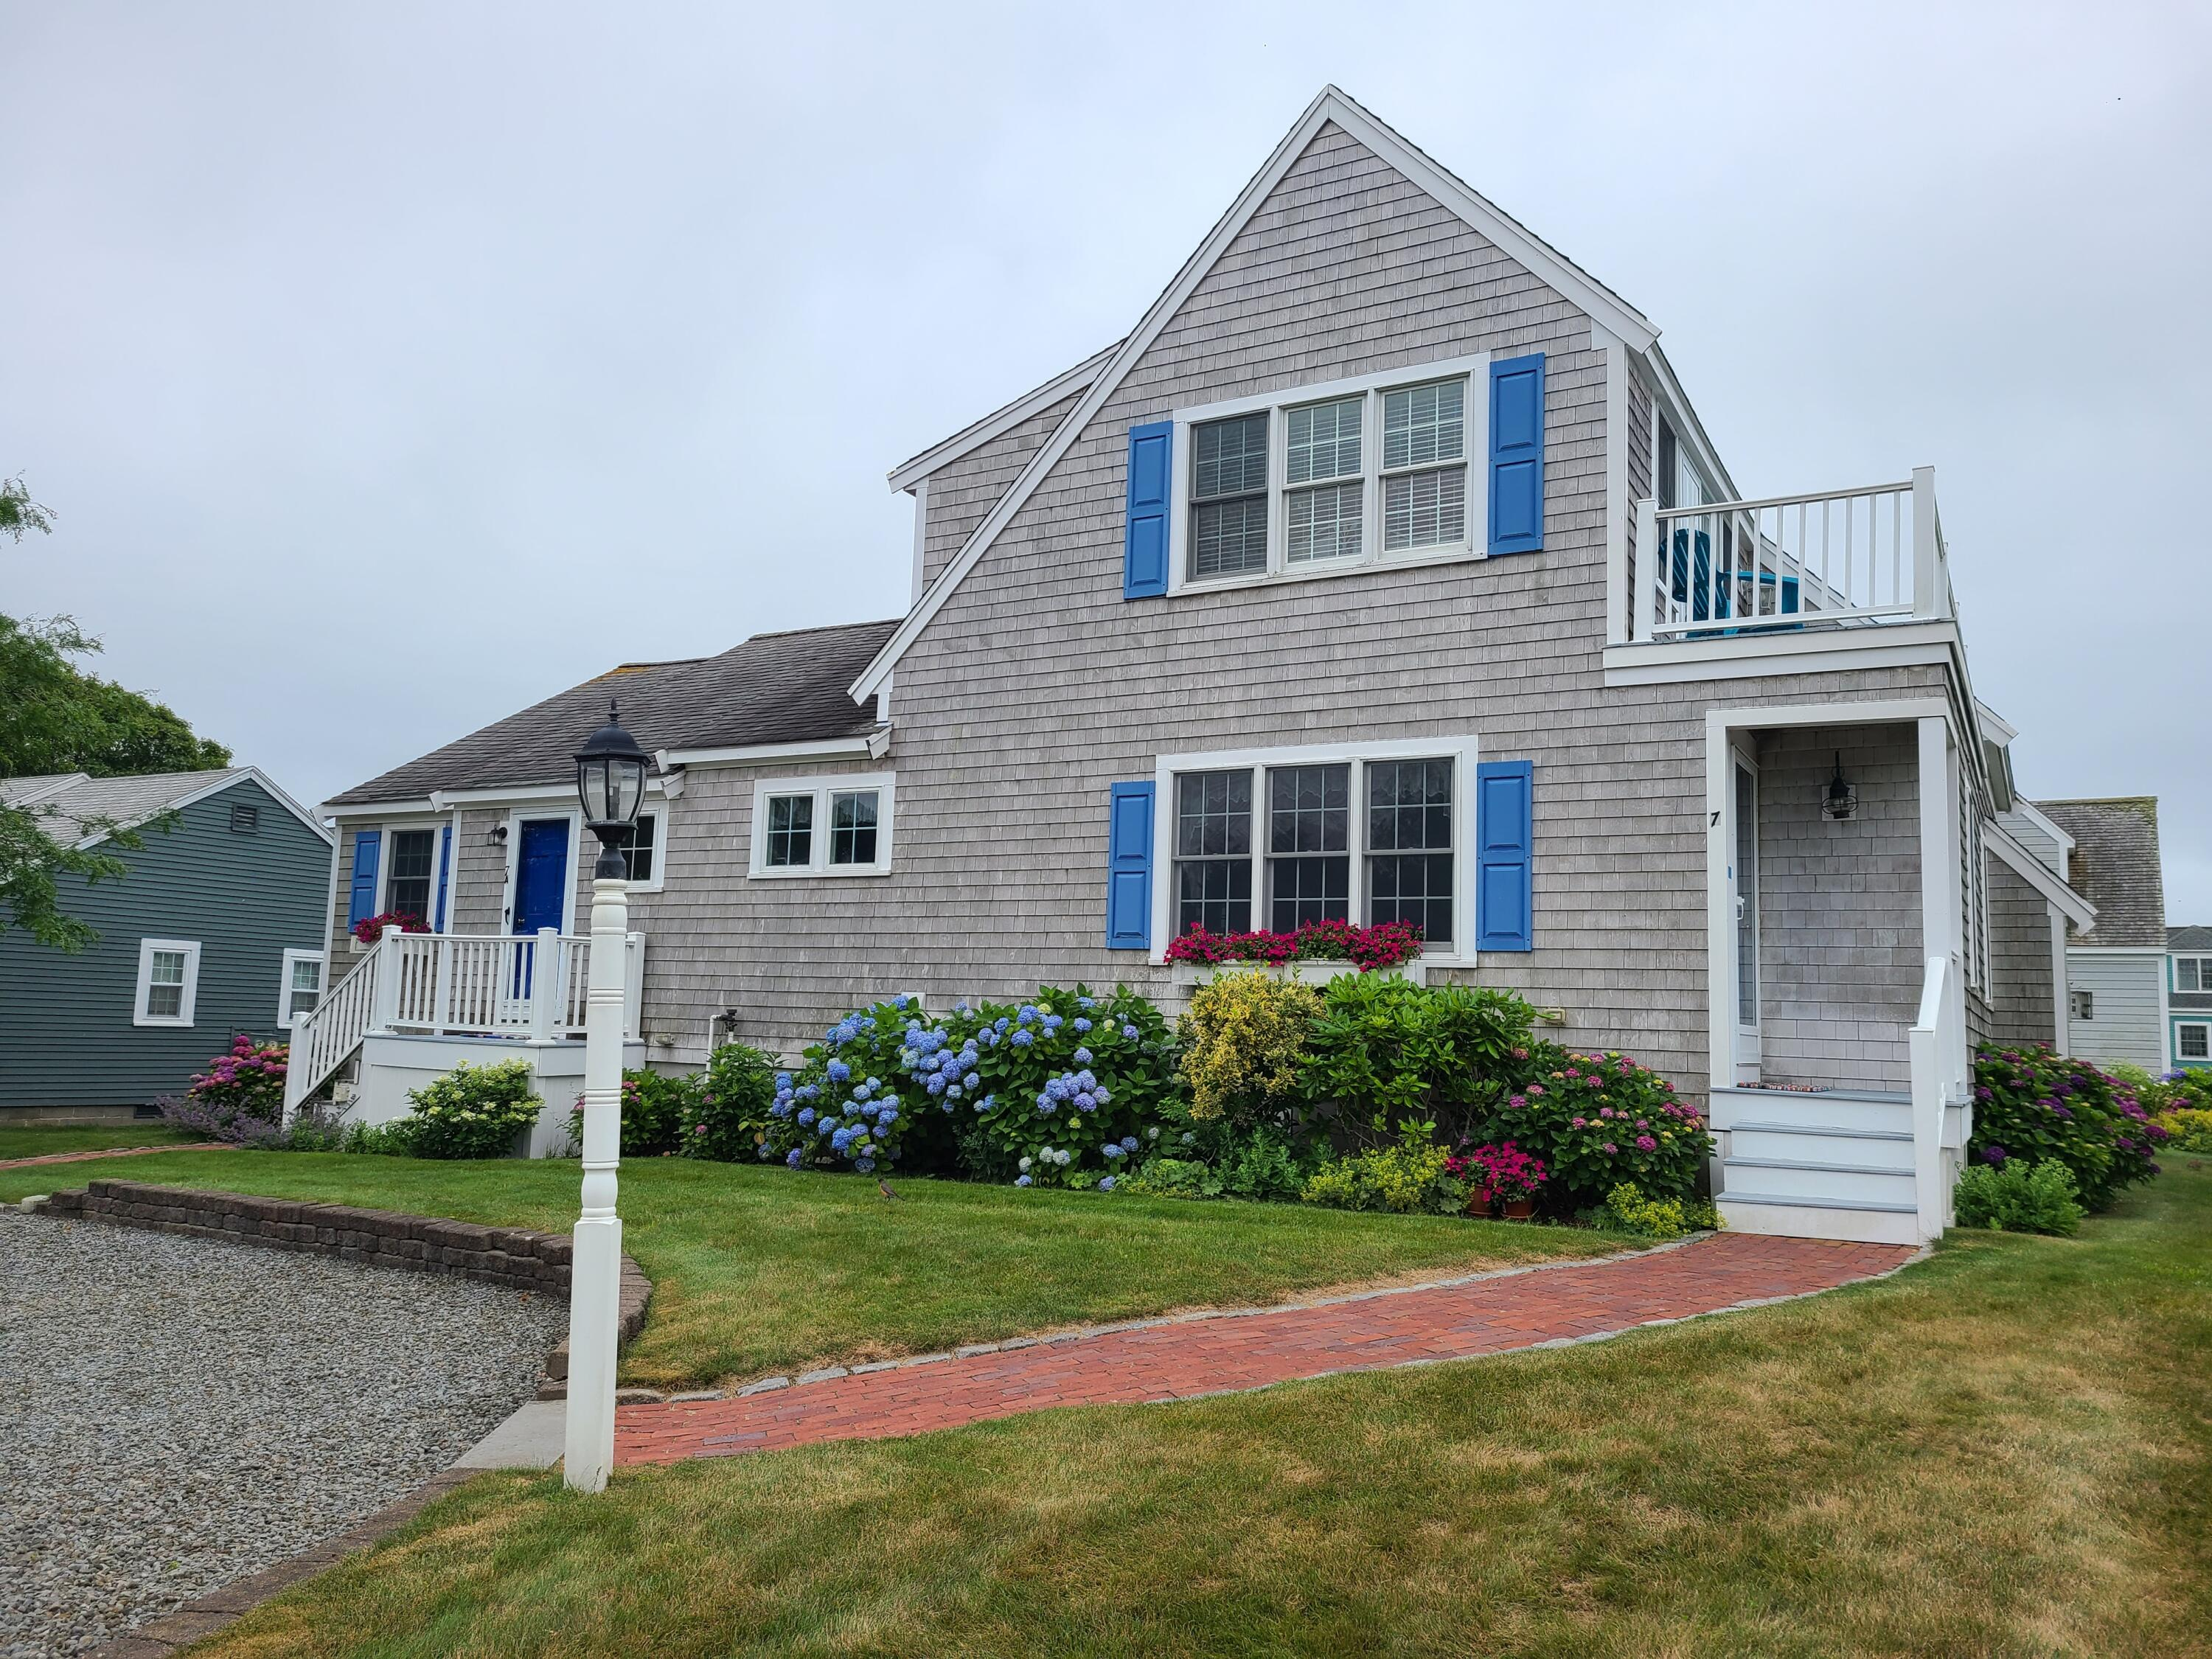 7 Television Lane, West Yarmouth MA, 02673 details